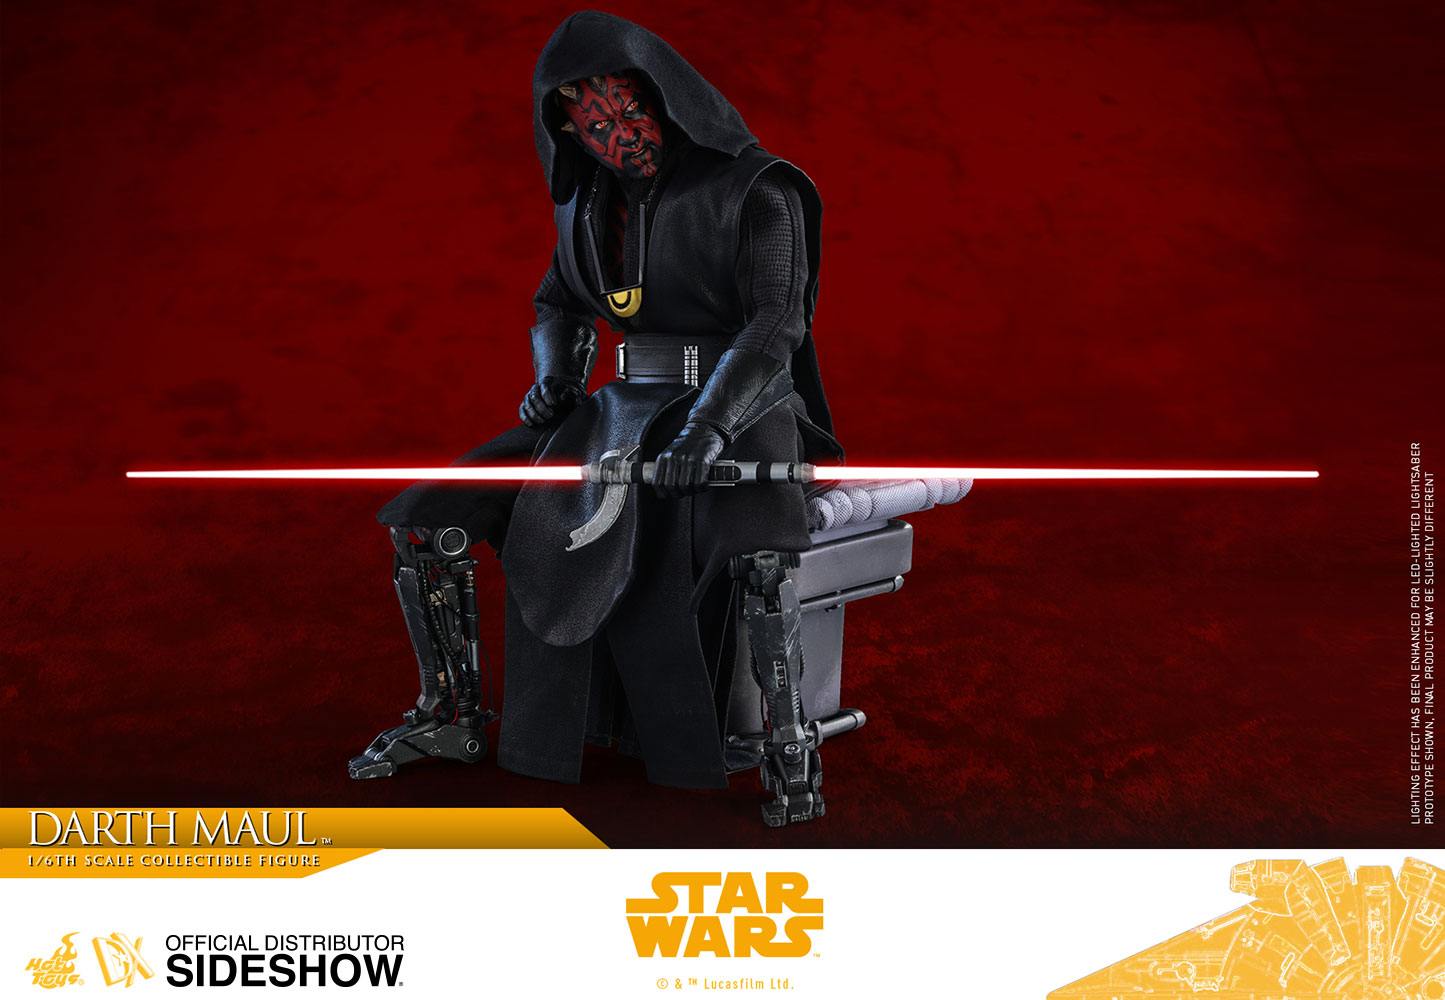 darth-maul-1:6th-Scale-Figure-09